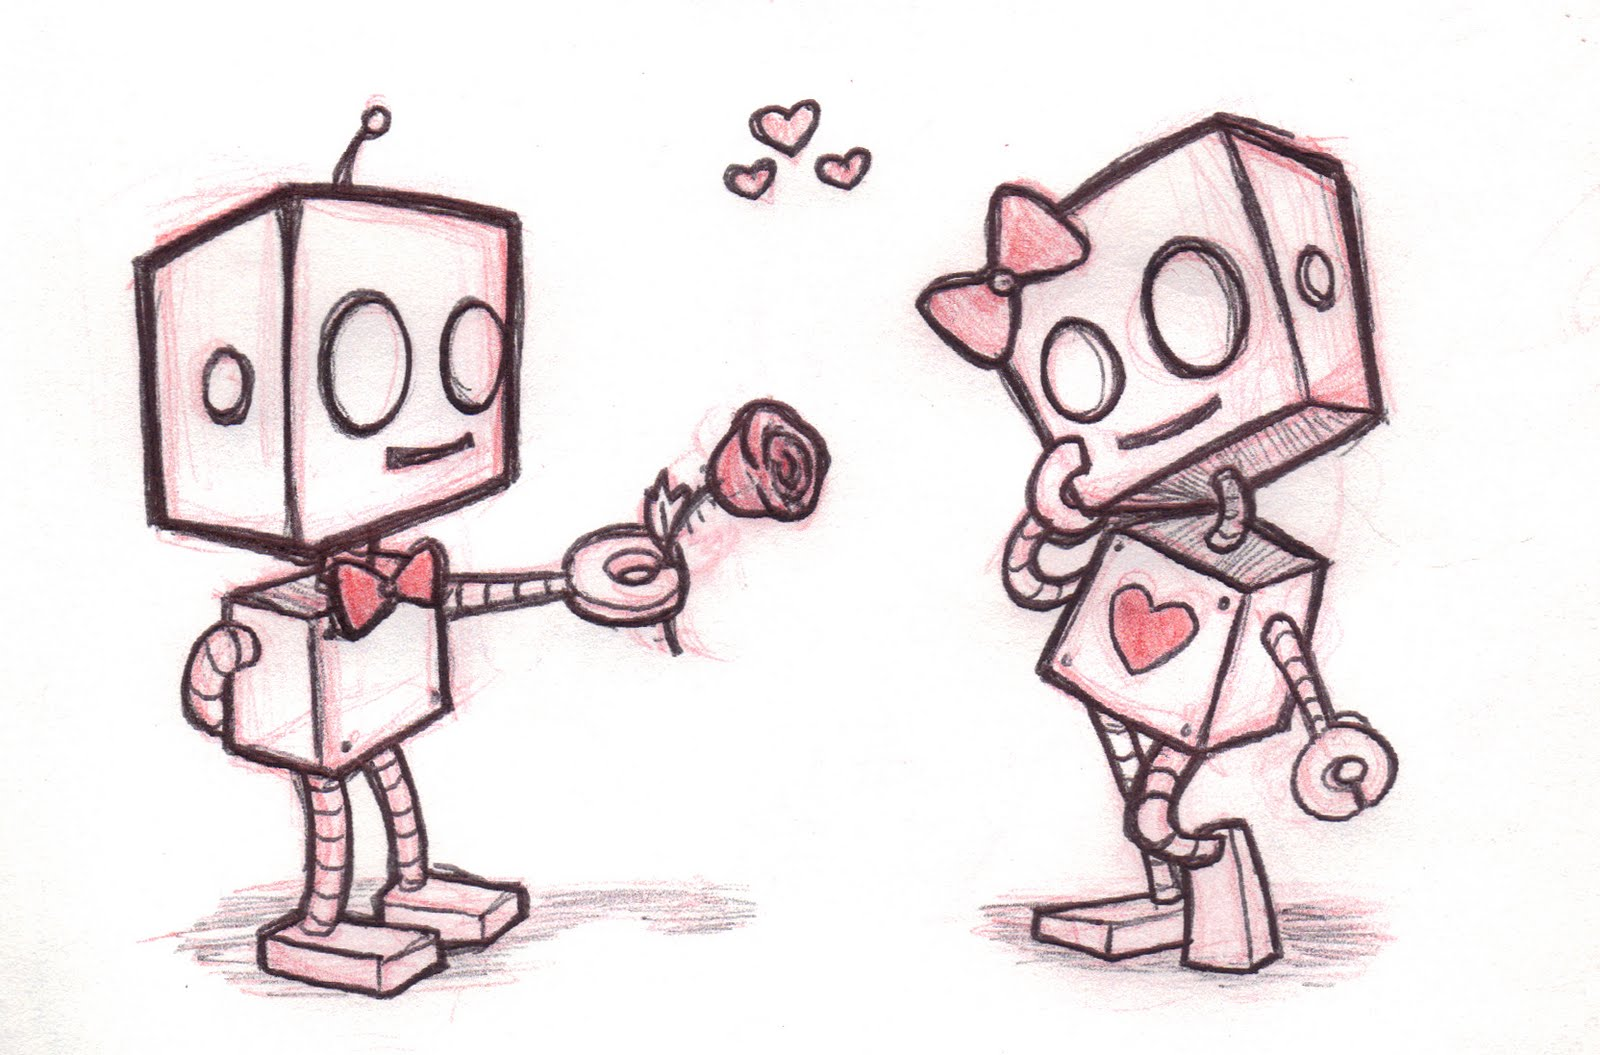 Cute Robot Love Wallpaper I still hold myself to the